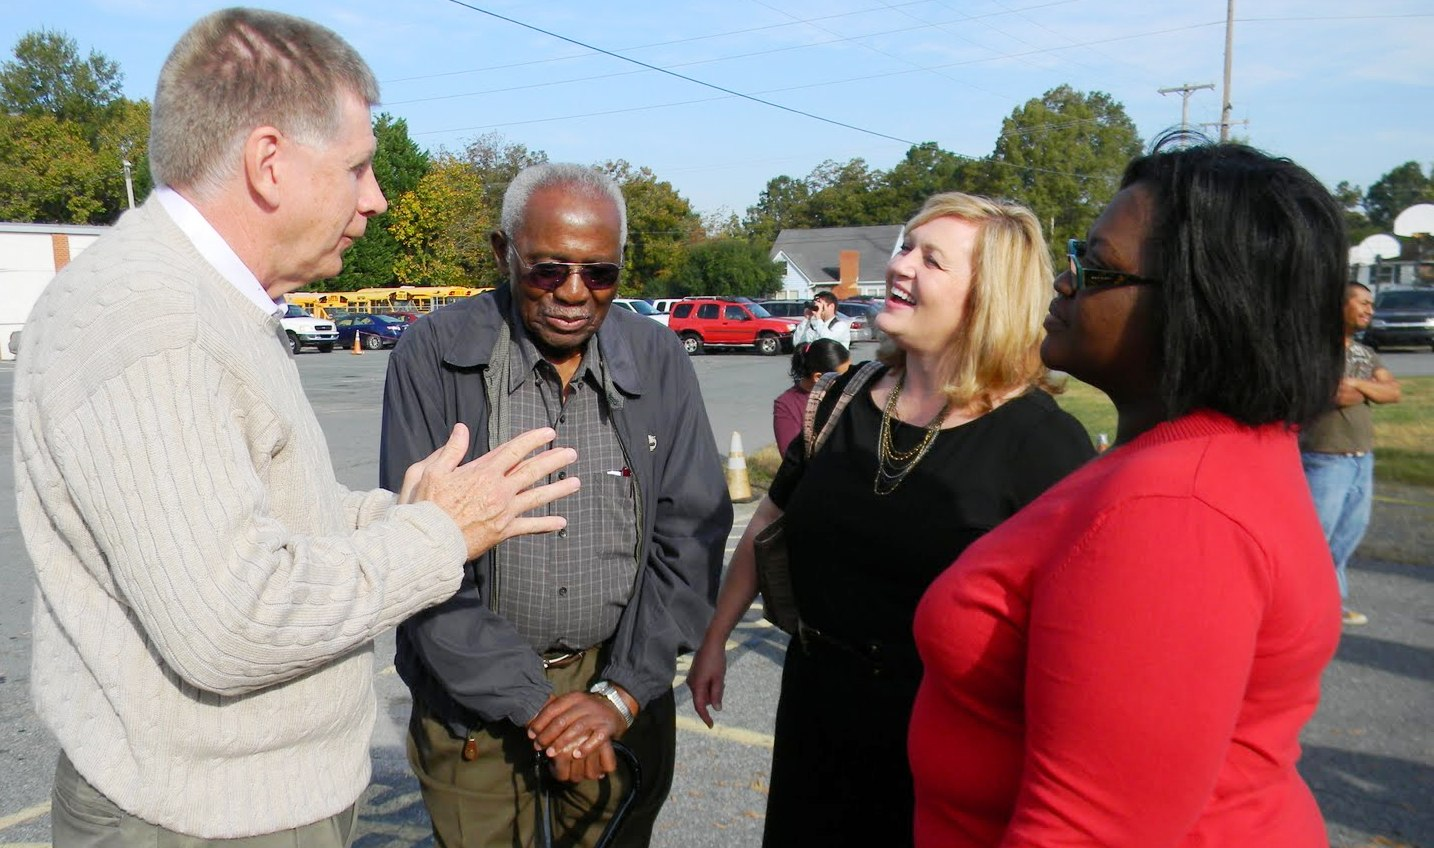 Rep. Larry Kissell (NC-08) joined with Union County Community Action (UCCA) and members of the community to celebrate and help raise awareness of the Head Start program.